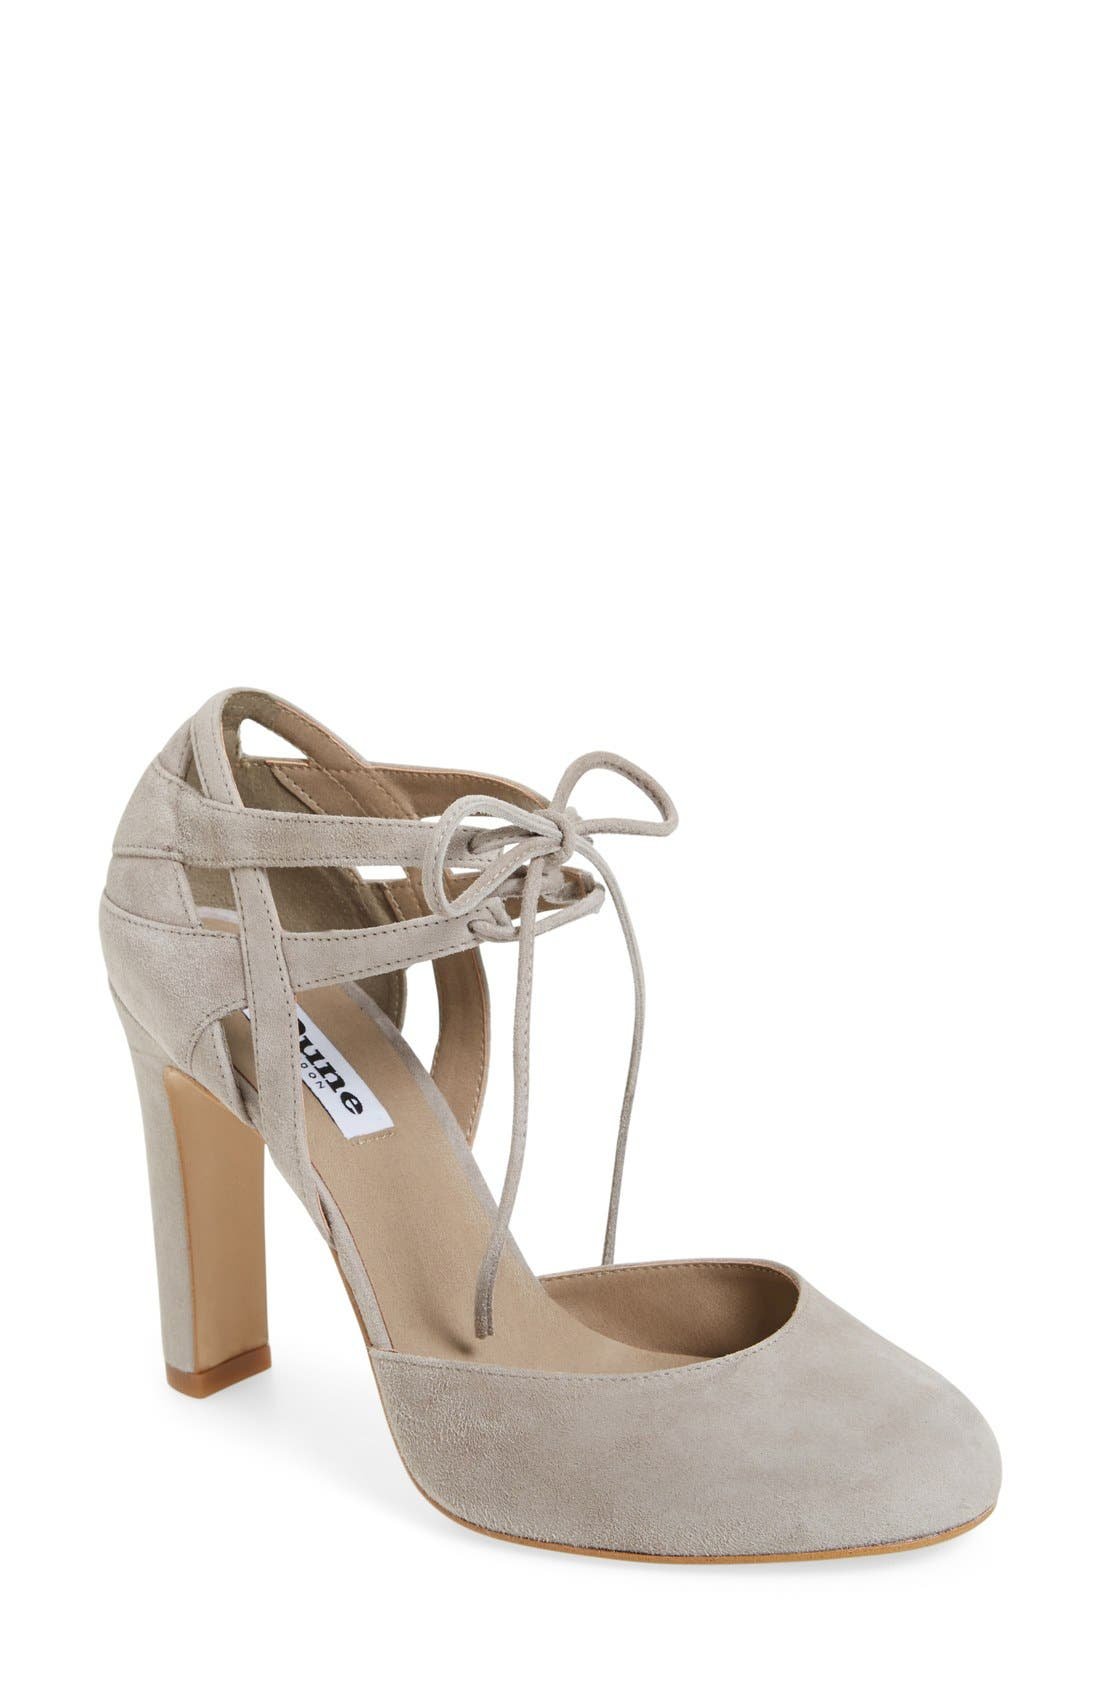 Alternate Image 1 Selected - Dune London 'Cannes' Lace Up d'Orsay Pump (Women)